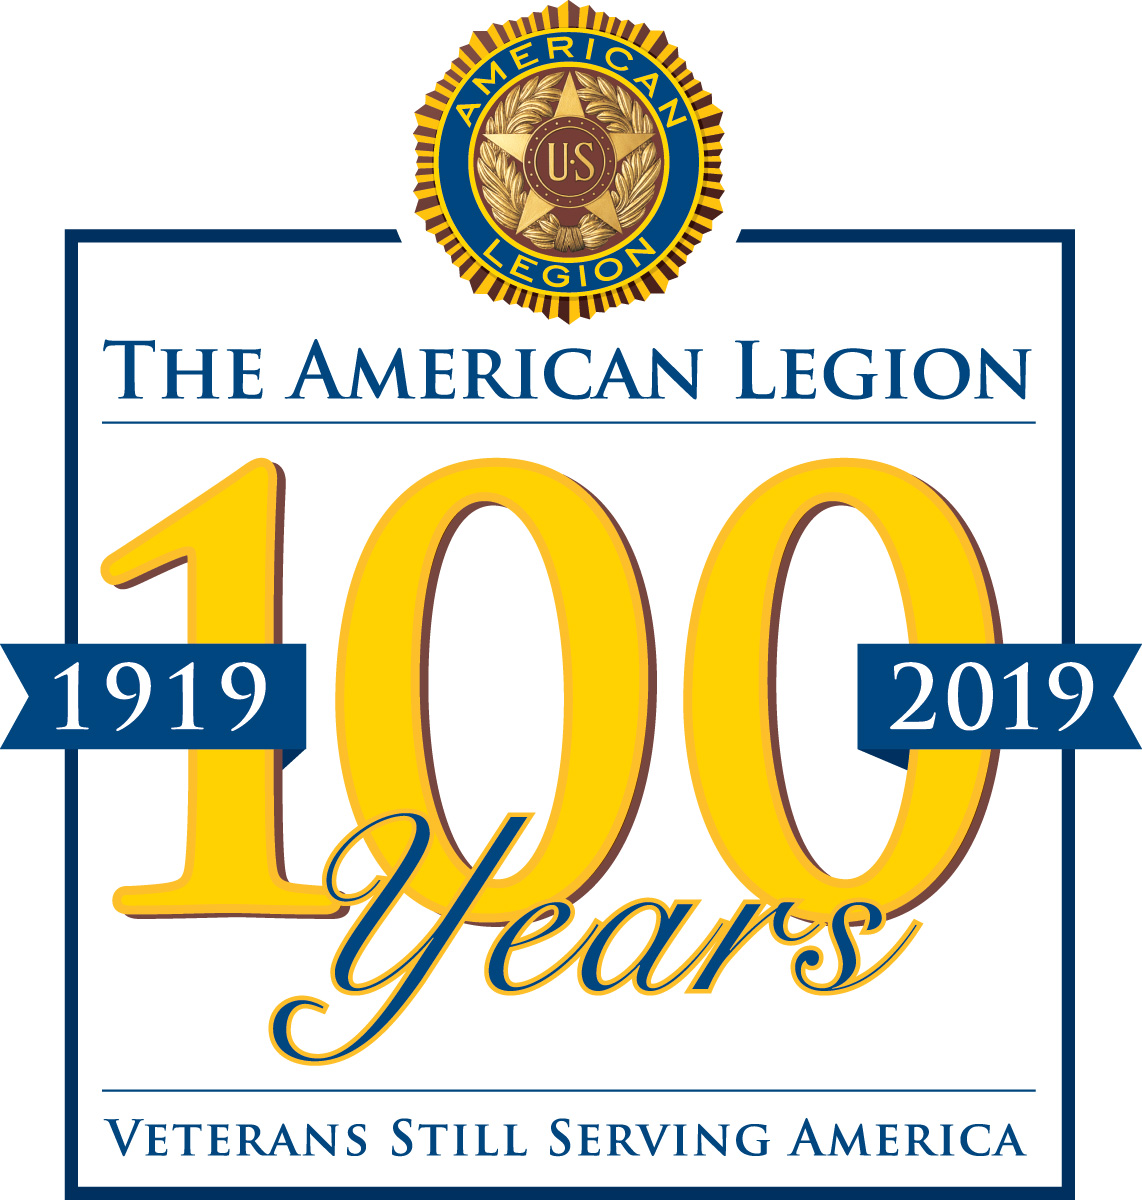 The American Legion 100 Years 1919 to 2019